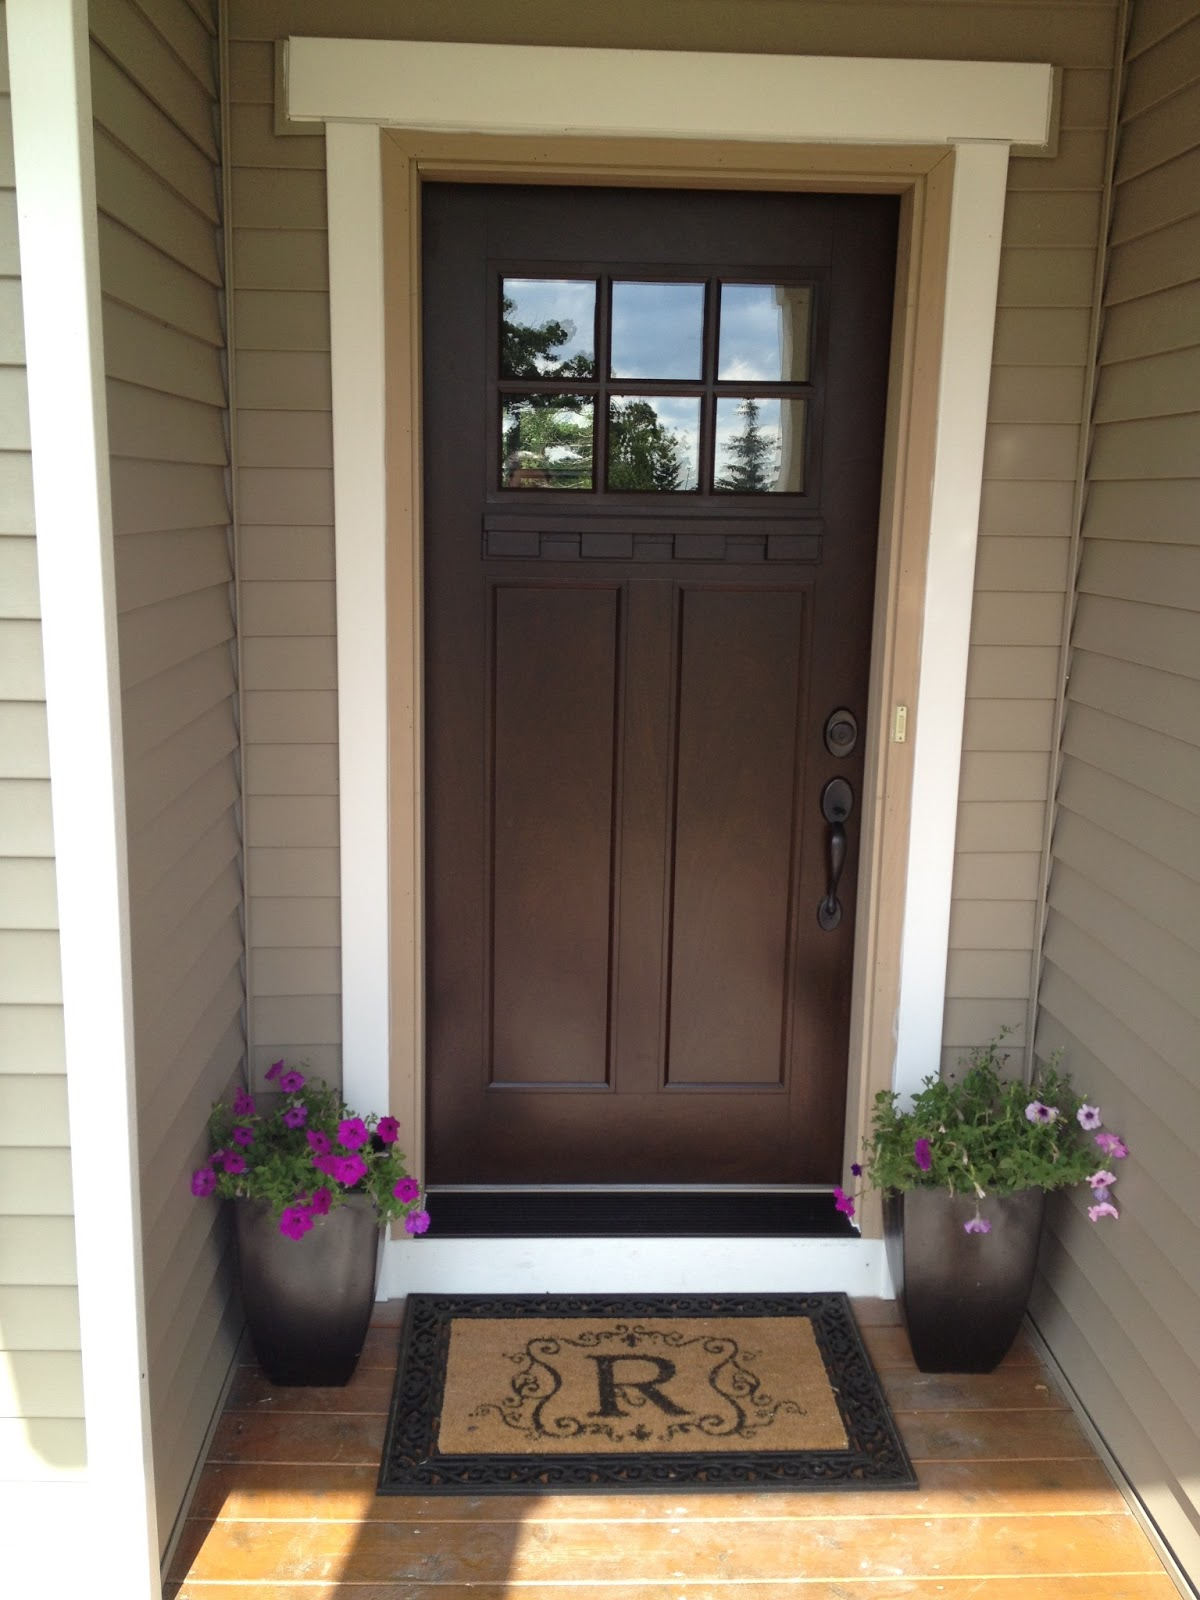 Our styled suburban life new front door for Home front door ideas